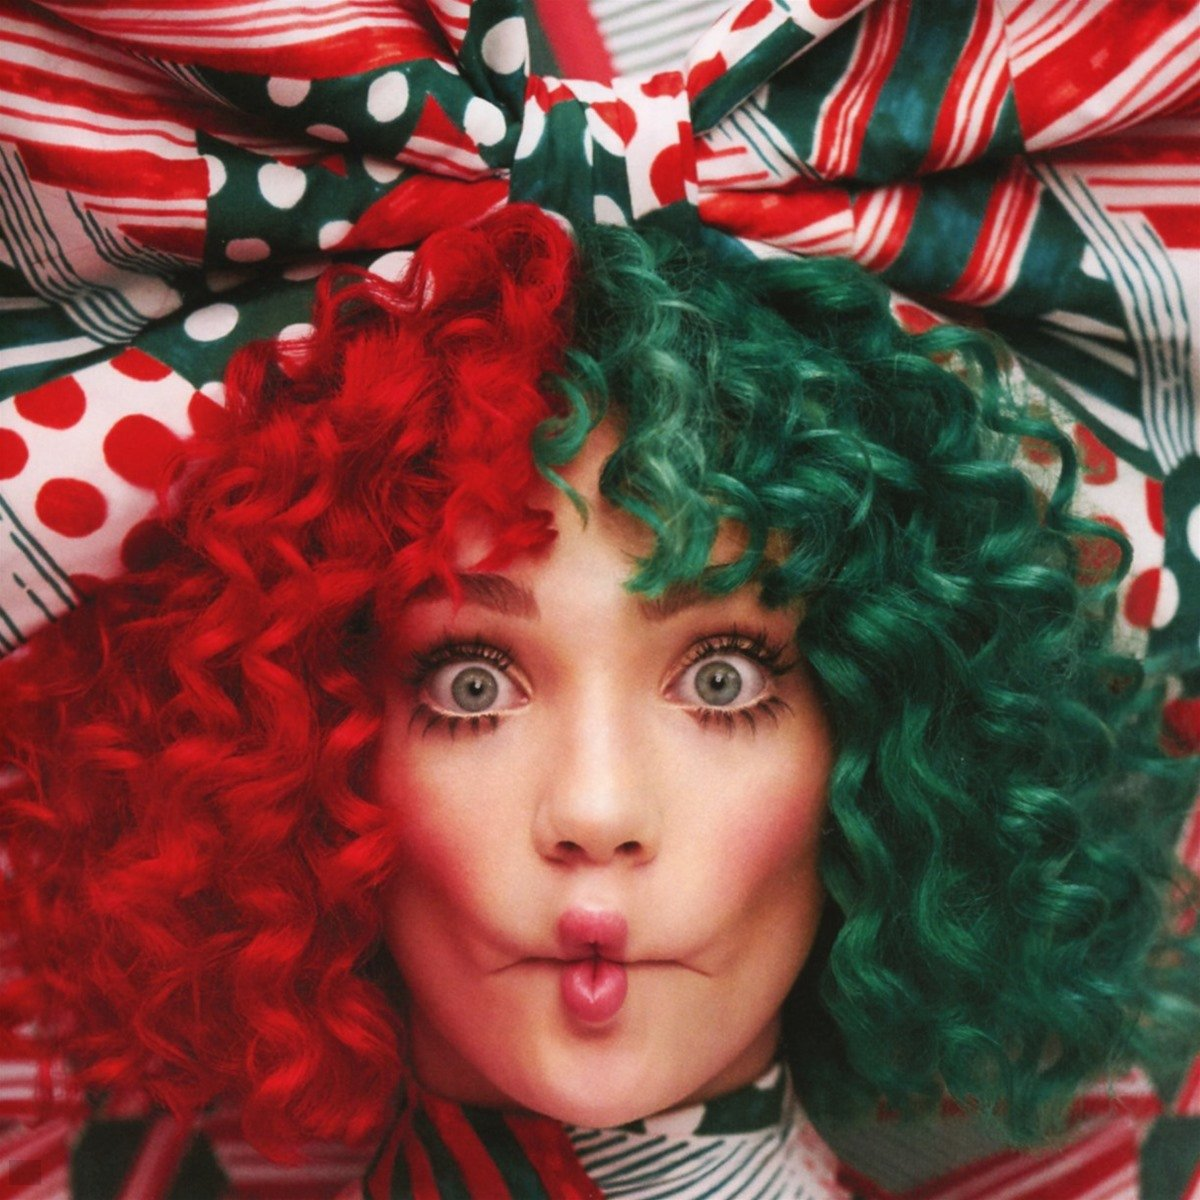 Sia Everyday Is Christmas 2020 Sia   Everyday Is Christmas   Amazon.Music